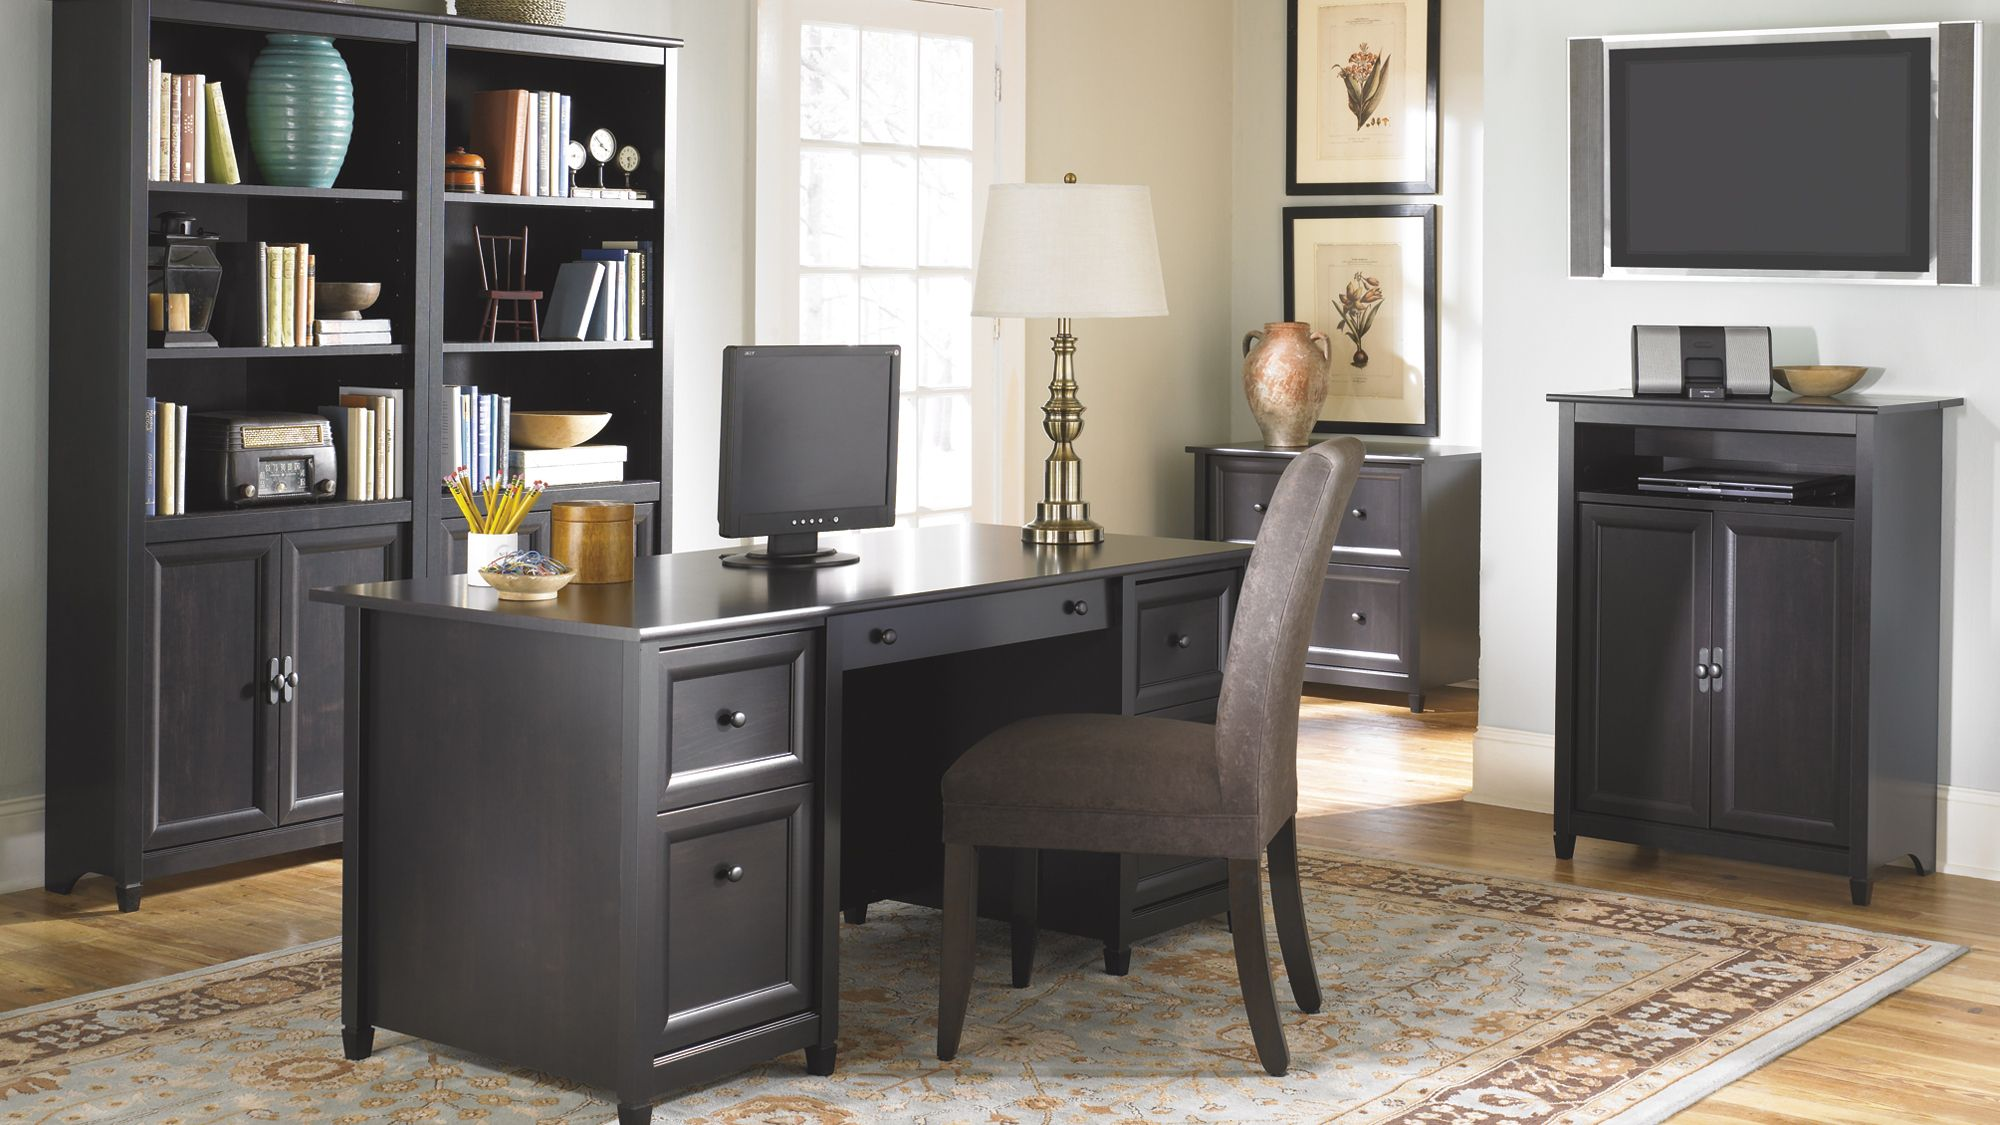 99 Sauder Edgewater Executive Desk Real Wood Home Office Furniture Check More At Http